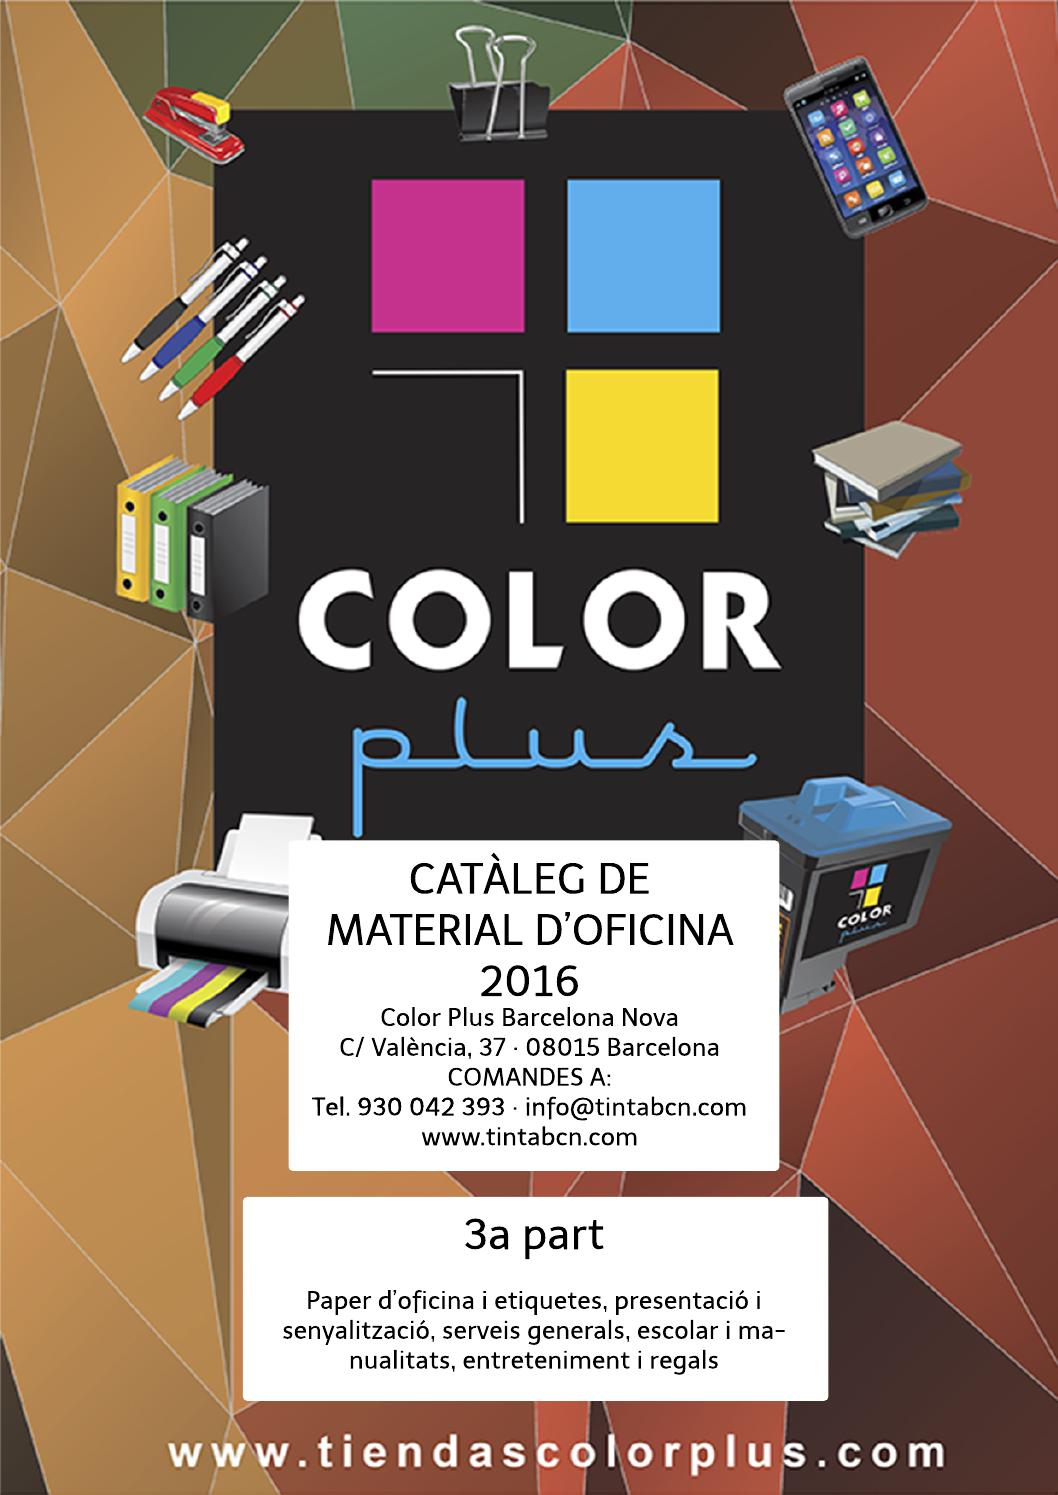 8944849f3 Catàleg material oficina 2016 COLOR PLUS - 3a p by Color Plus Barcelona  Nova - issuu